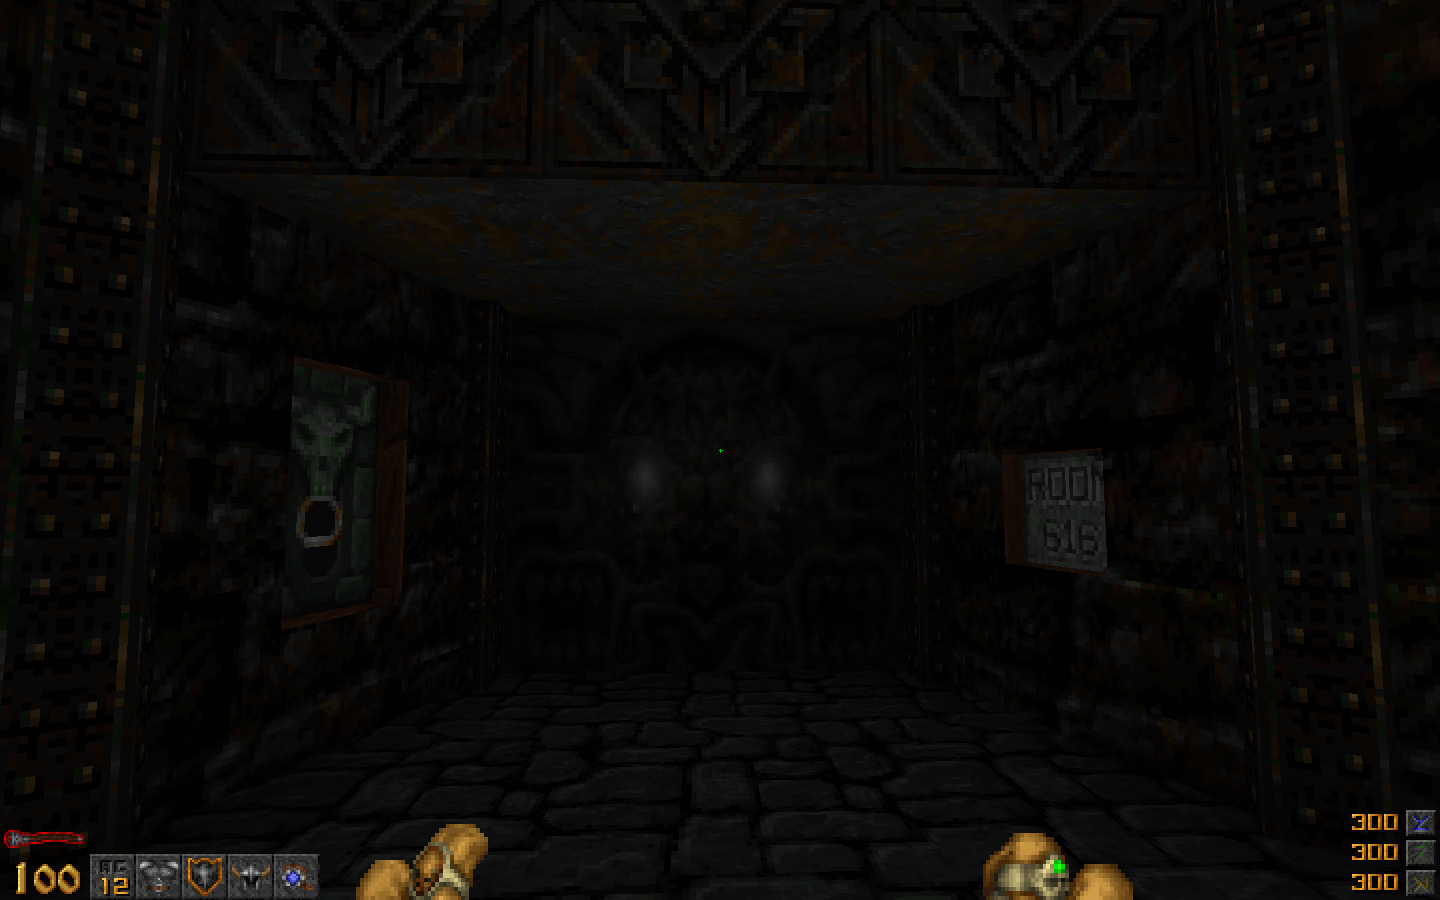 Screenshot_Hexen_20200626_211613.png